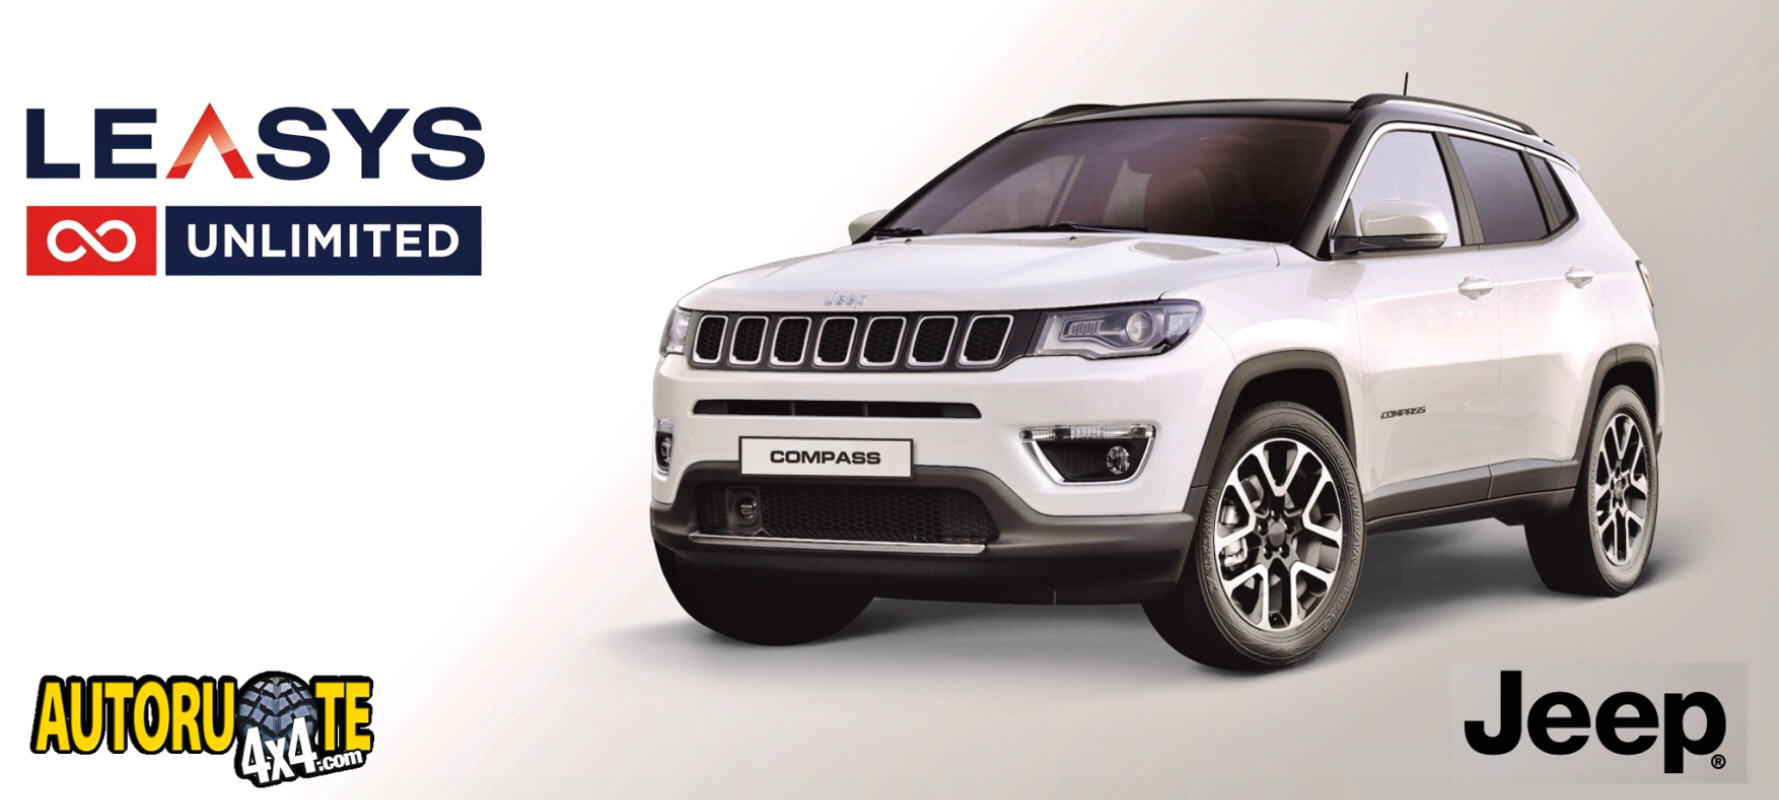 Jeep Compass 2.0 Limited 4WD by Leasys Unlimited